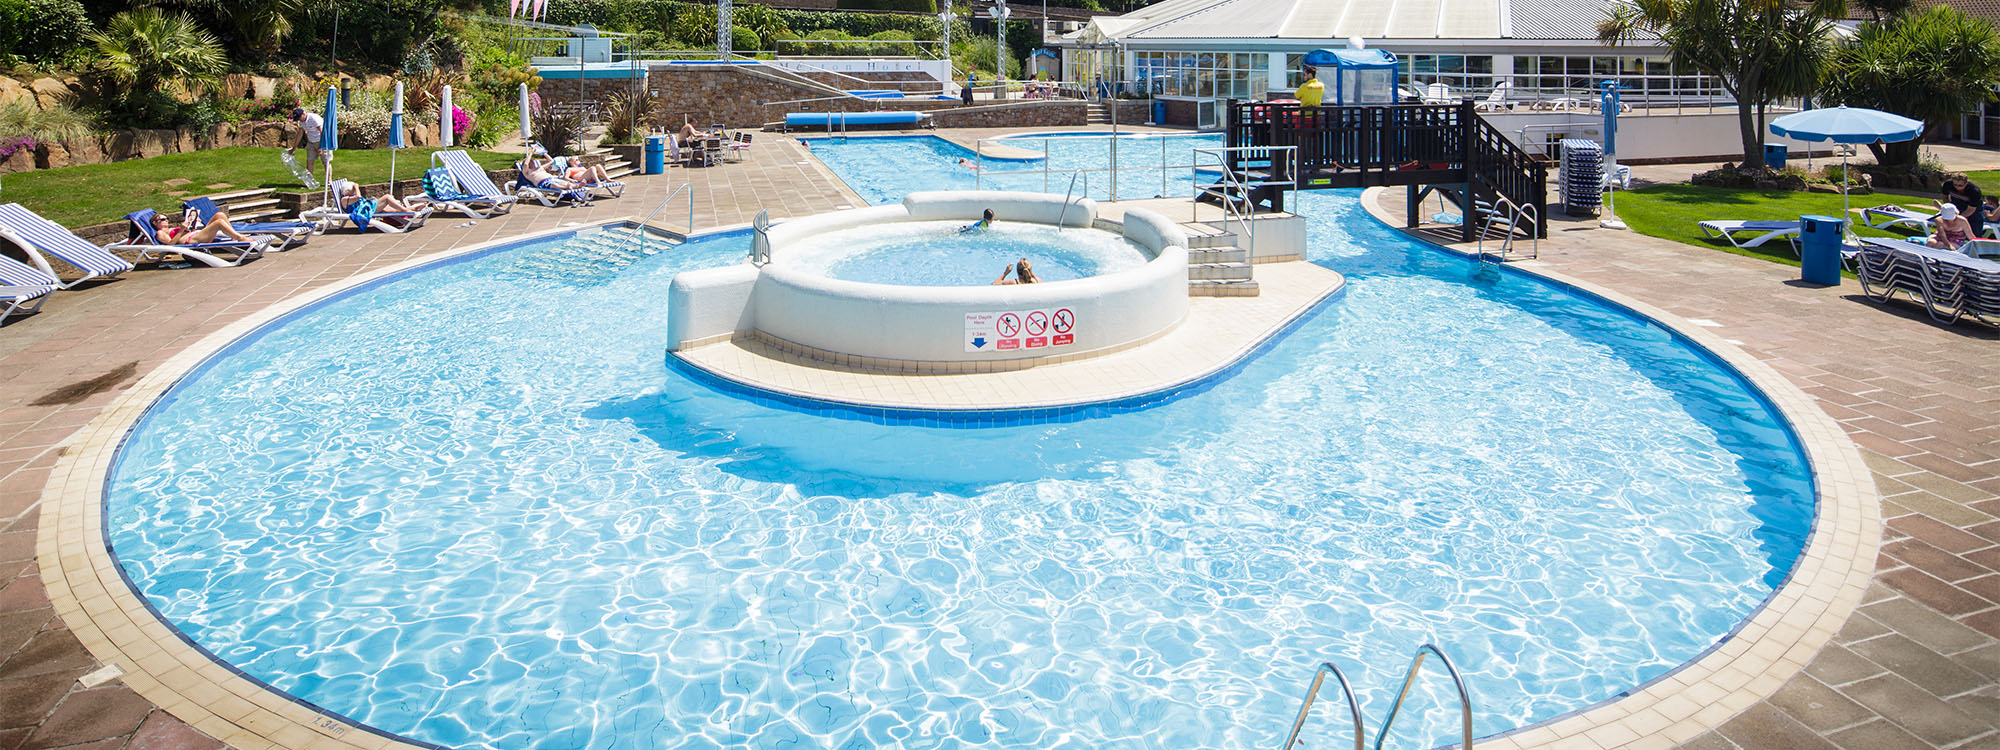 pool guidelines for the merton aquadome in jersey rh seymourhotels com Swimming Pool Loans Online Swimming Pool Heaters Product